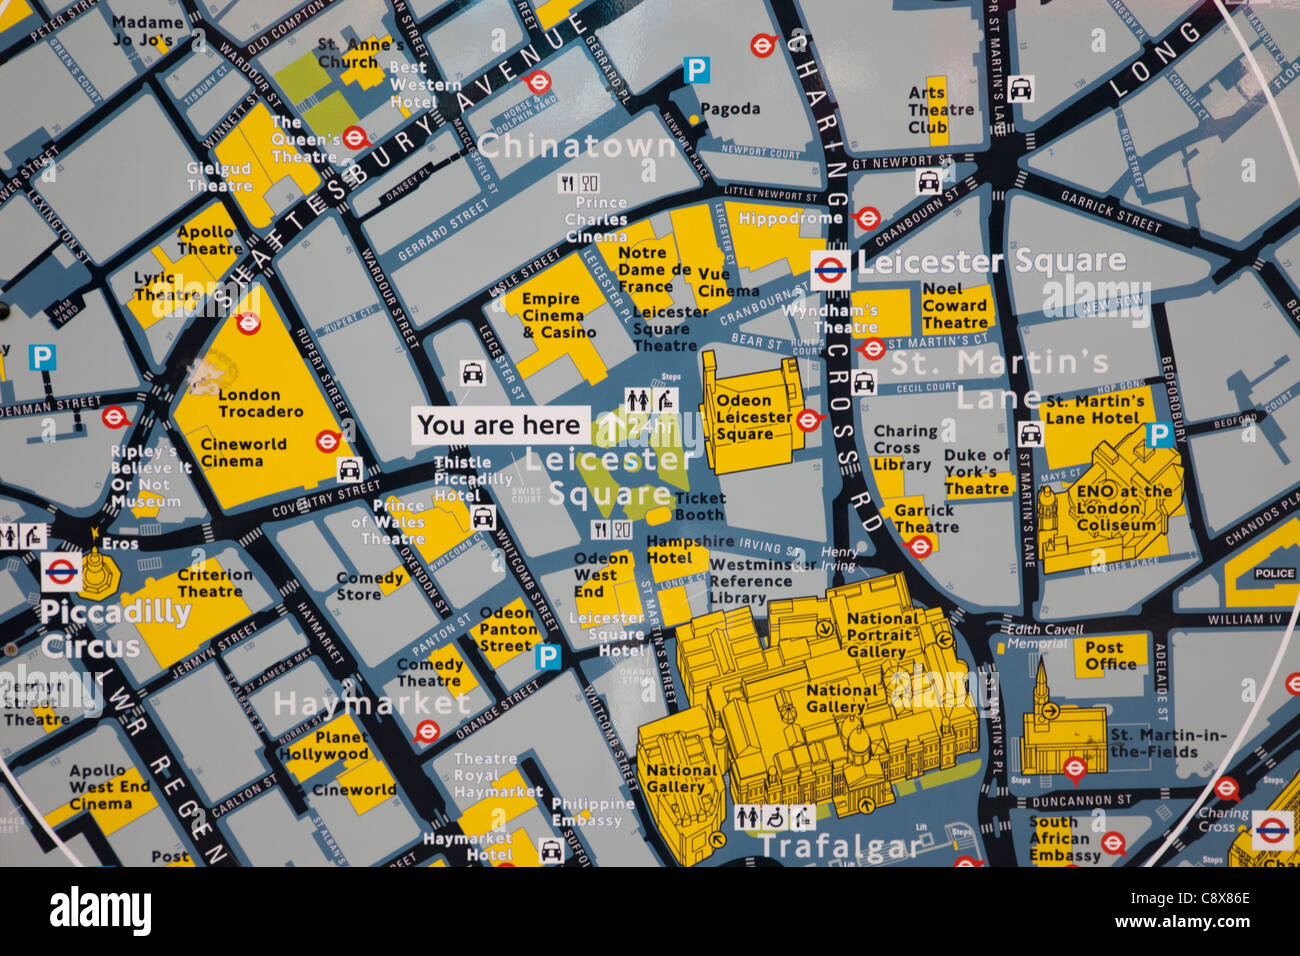 England London Leicester Square Tourist Information Map – Tourist Map of London England